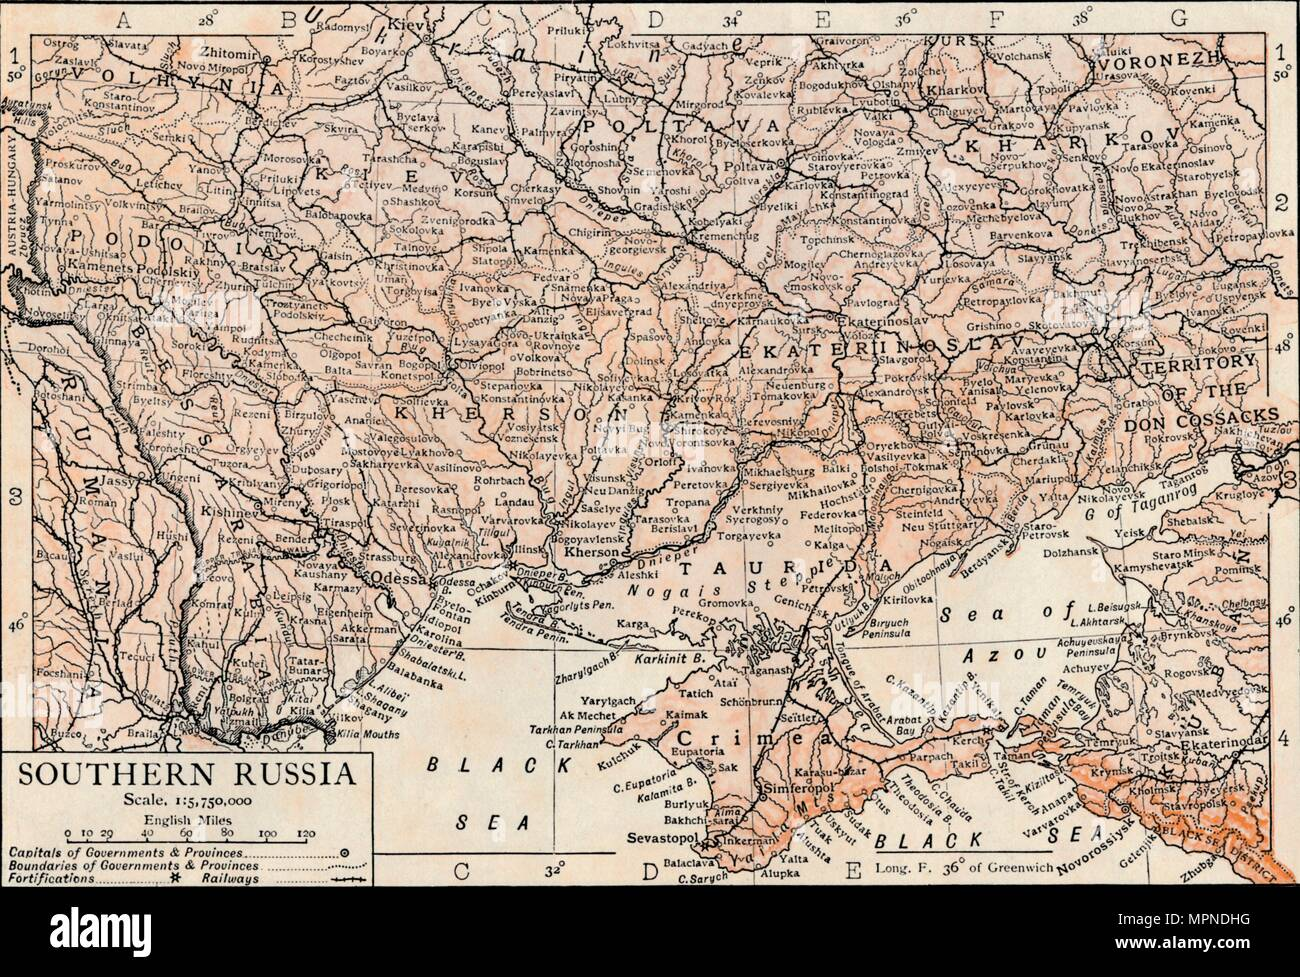 'Southern Russia'. Artist: Unknown. - Stock Image